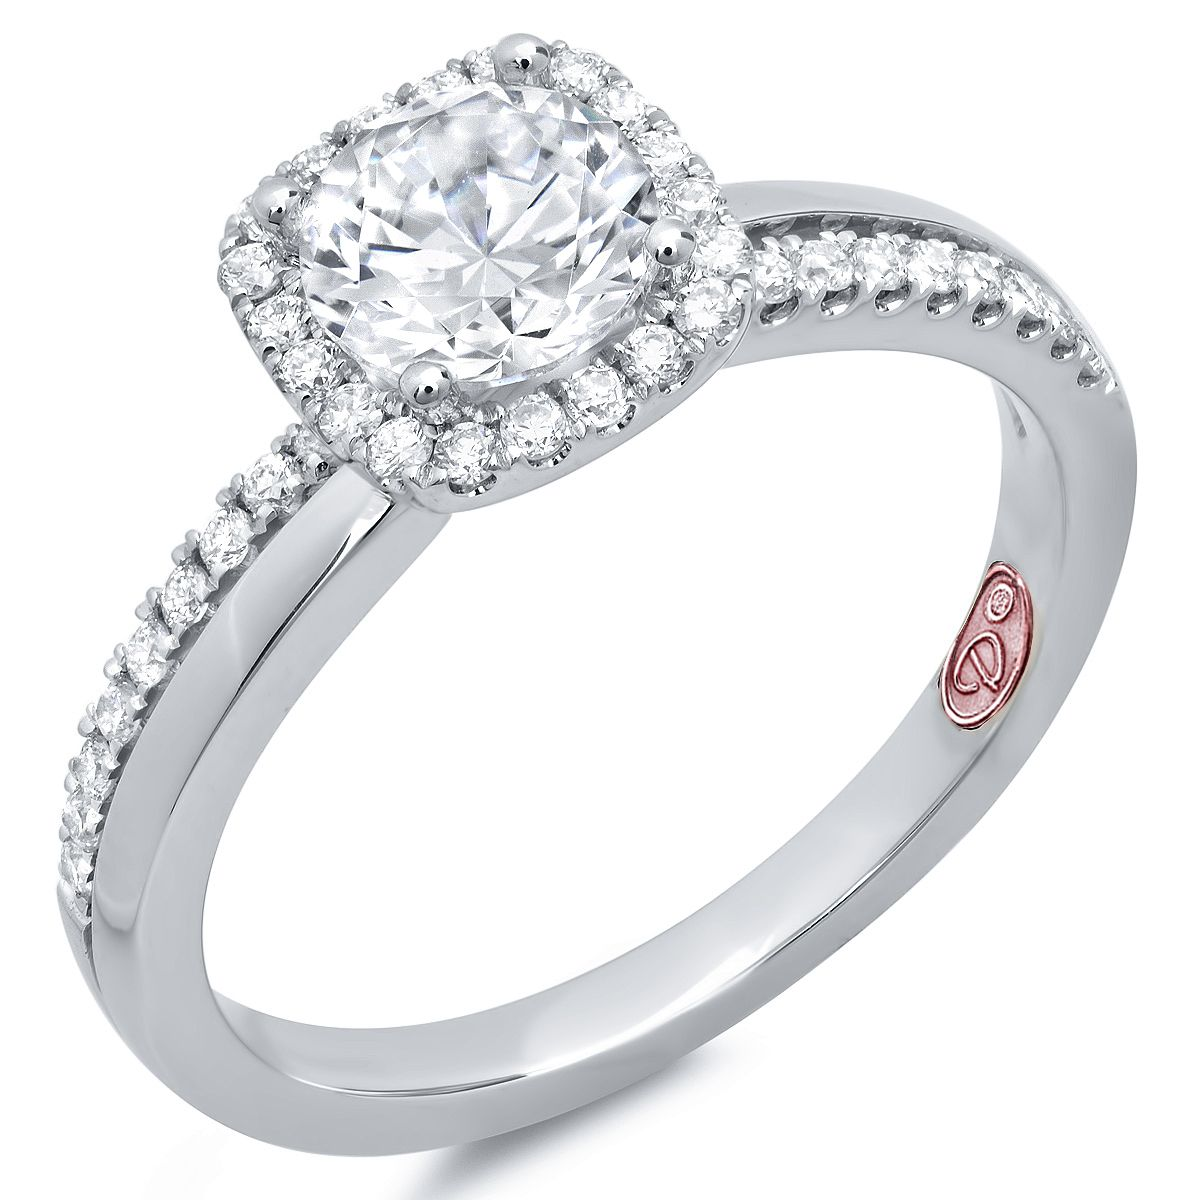 Designer Engagement Rings from DemarcoJewelry.com  Available in White Gold 18KT and Platinum.0.25 RD Capture her grace and endless beauty with this confident yet elegant design. We have also incorporated a unique pink diamond with every single one of our rings, symbolizing that hidden, unspoken emotion and feeling one carries in their heart about their significant other.   This is not just another ring, this is a heirloom piece of jewelry.